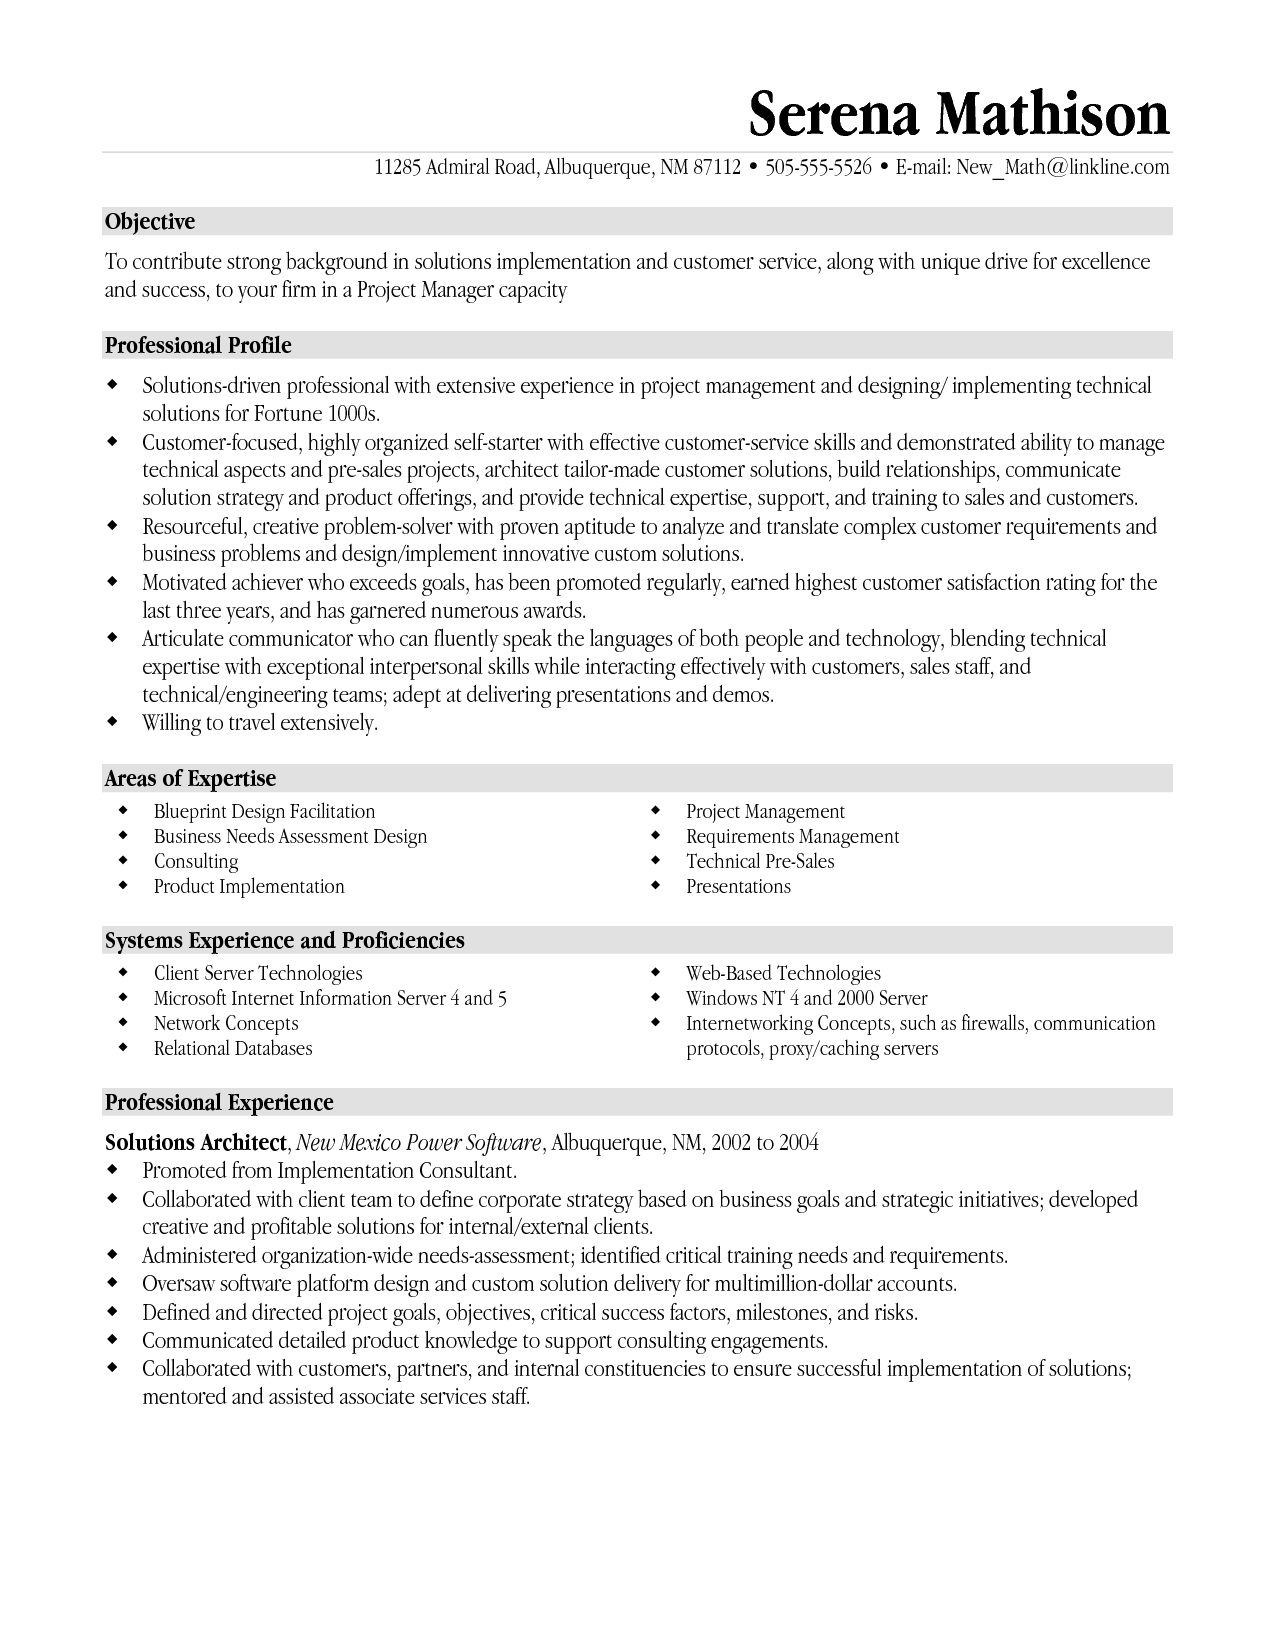 Resume Mission Statement Examples Resume Templates Project Manager  Project Management Resume